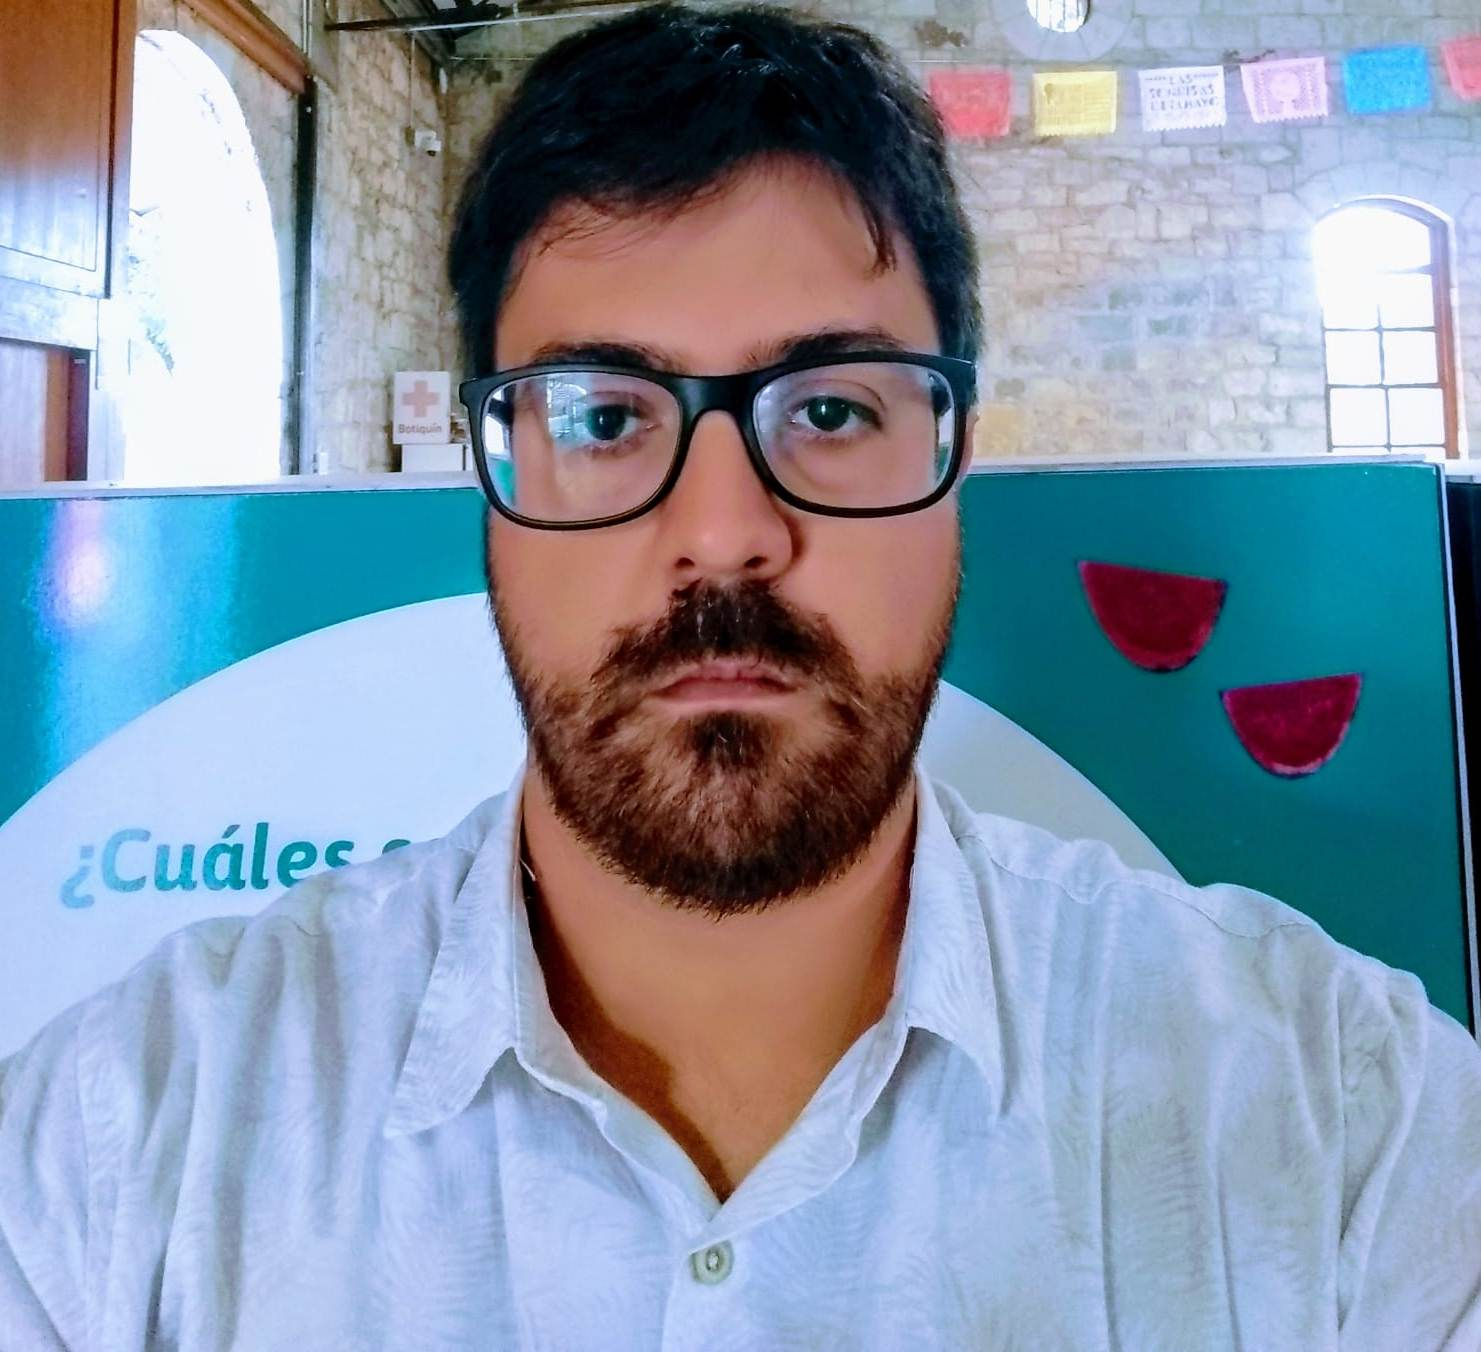 Keynote speaker for Climate Change Conferences 2020 - Pedro Henrique Campello Torres